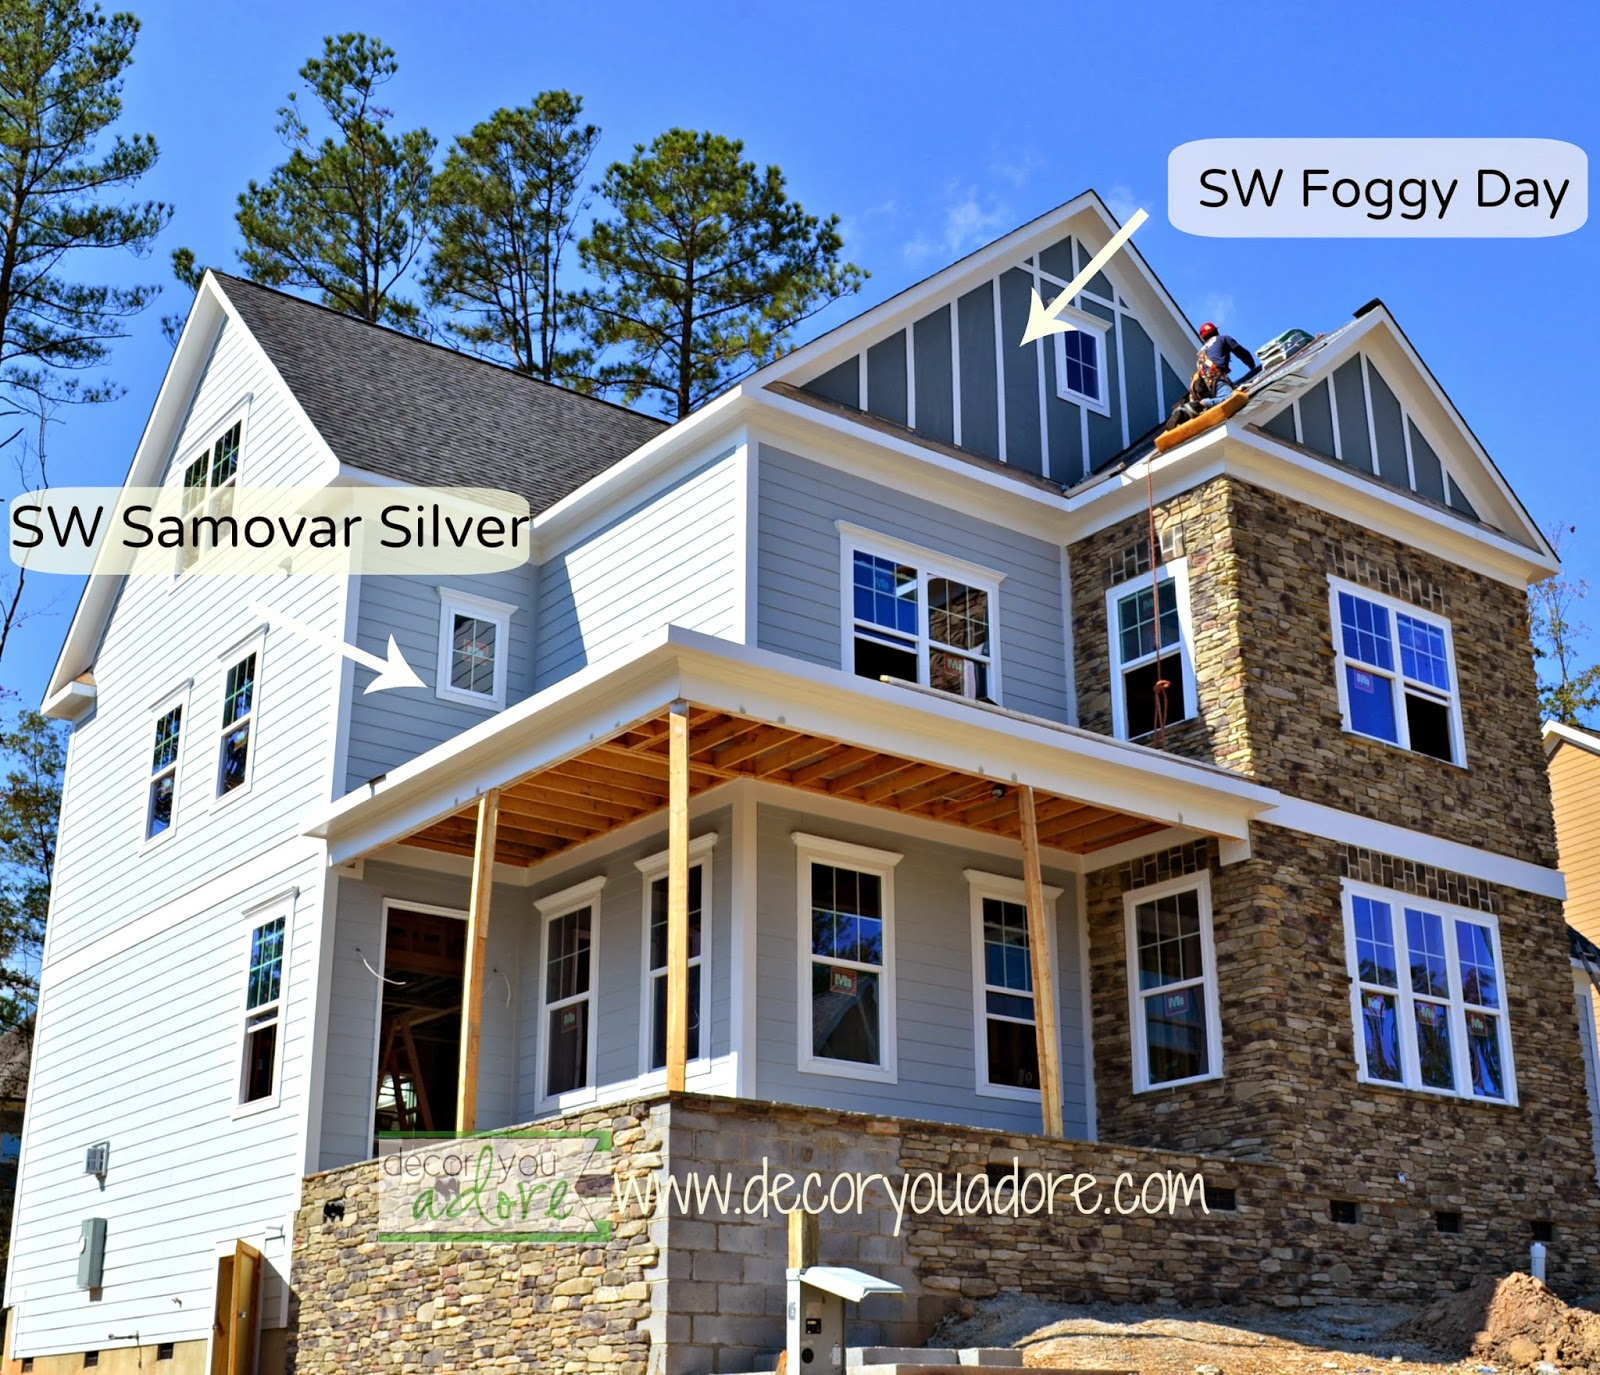 SW Samovar Silver, SW Foggy Day, Exterior Paint Color